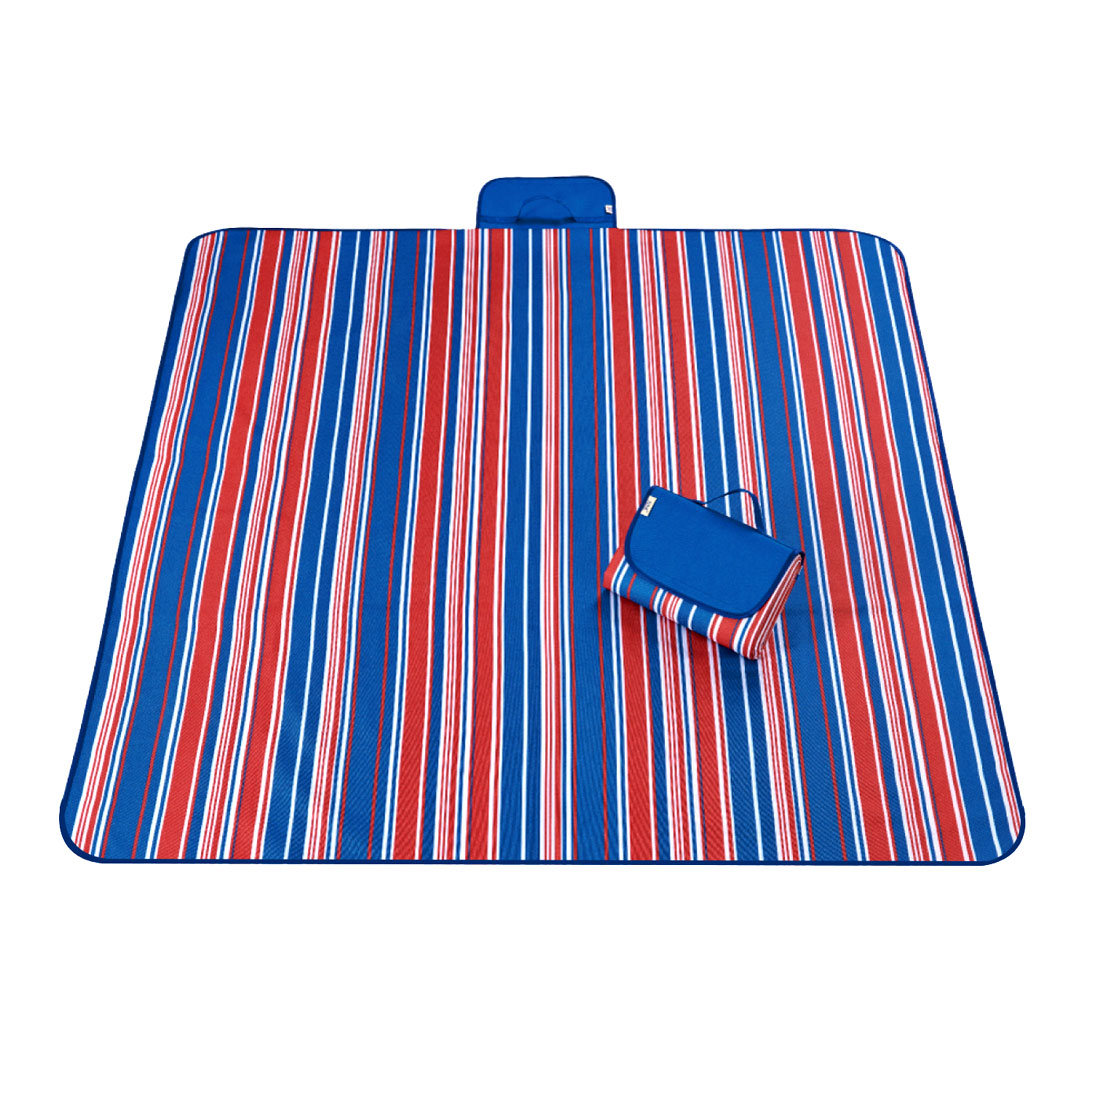 Unique Bargains Travel Camping Stripe Pattern Moisture Resistant Picnic Mat Blue 145 x 200cm